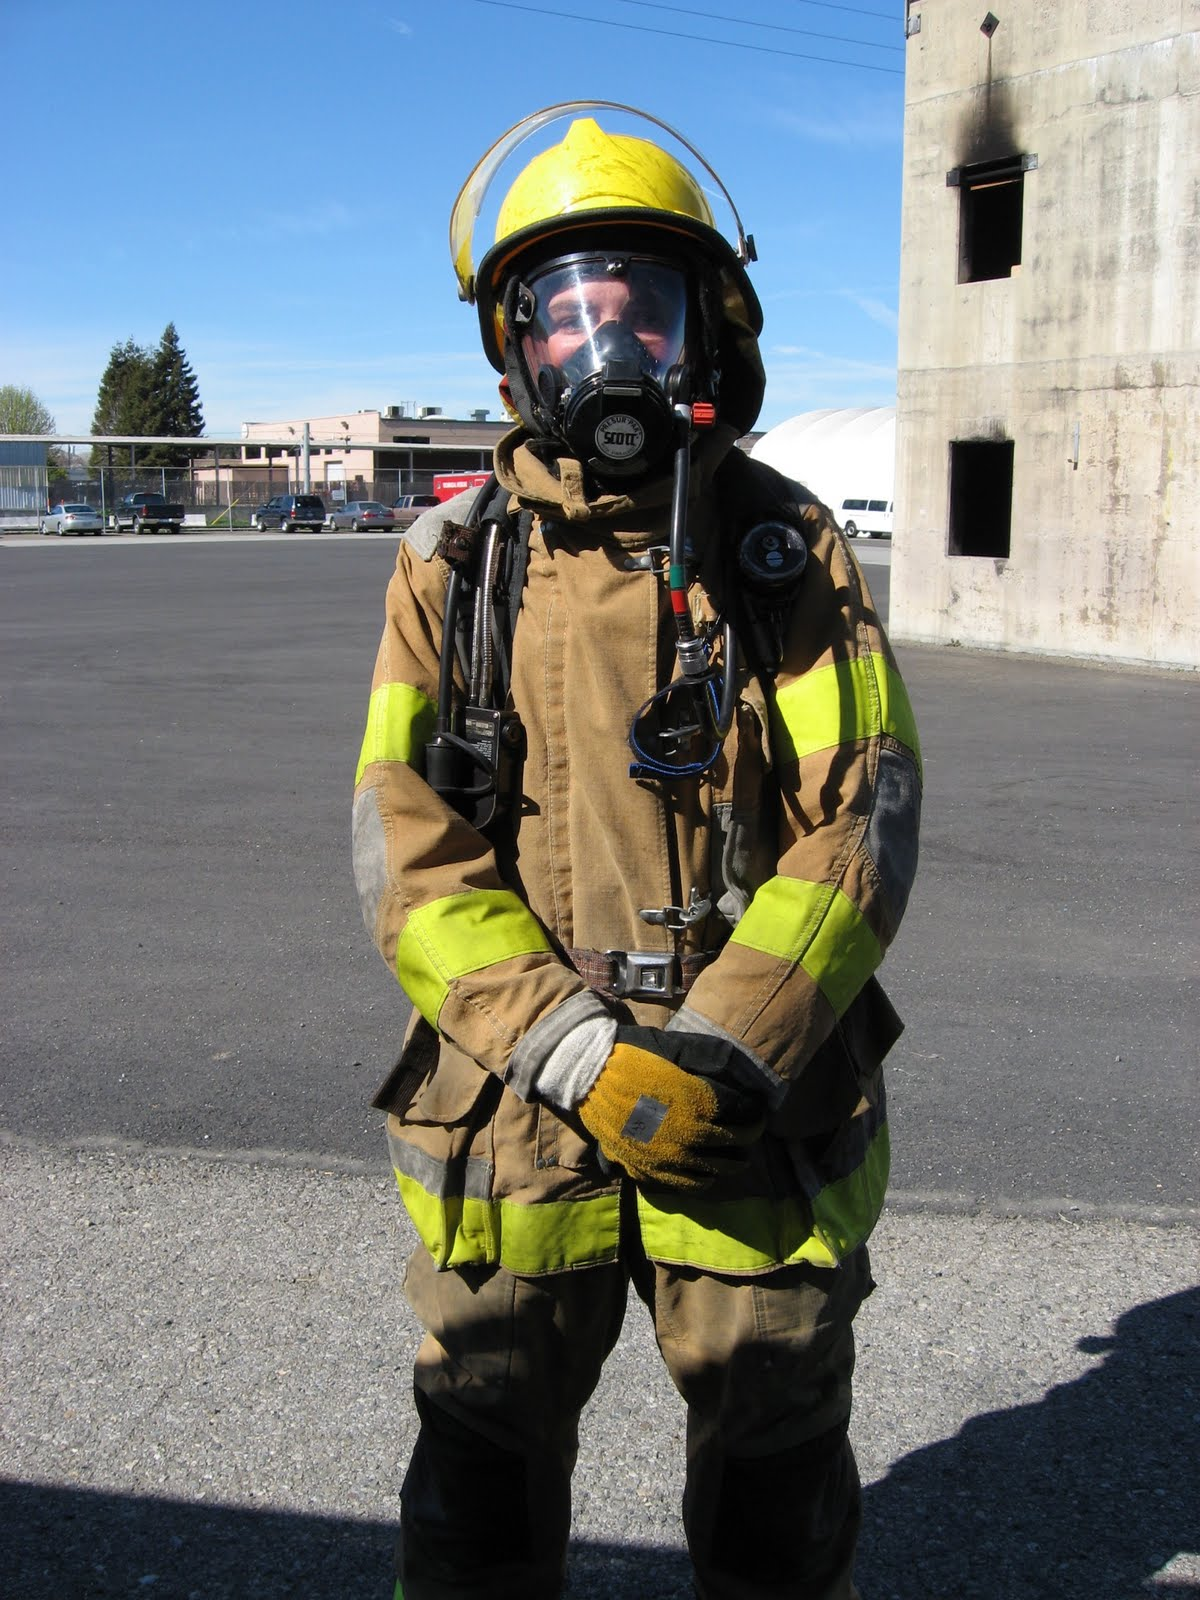 Me dressed up in full firefighter gear